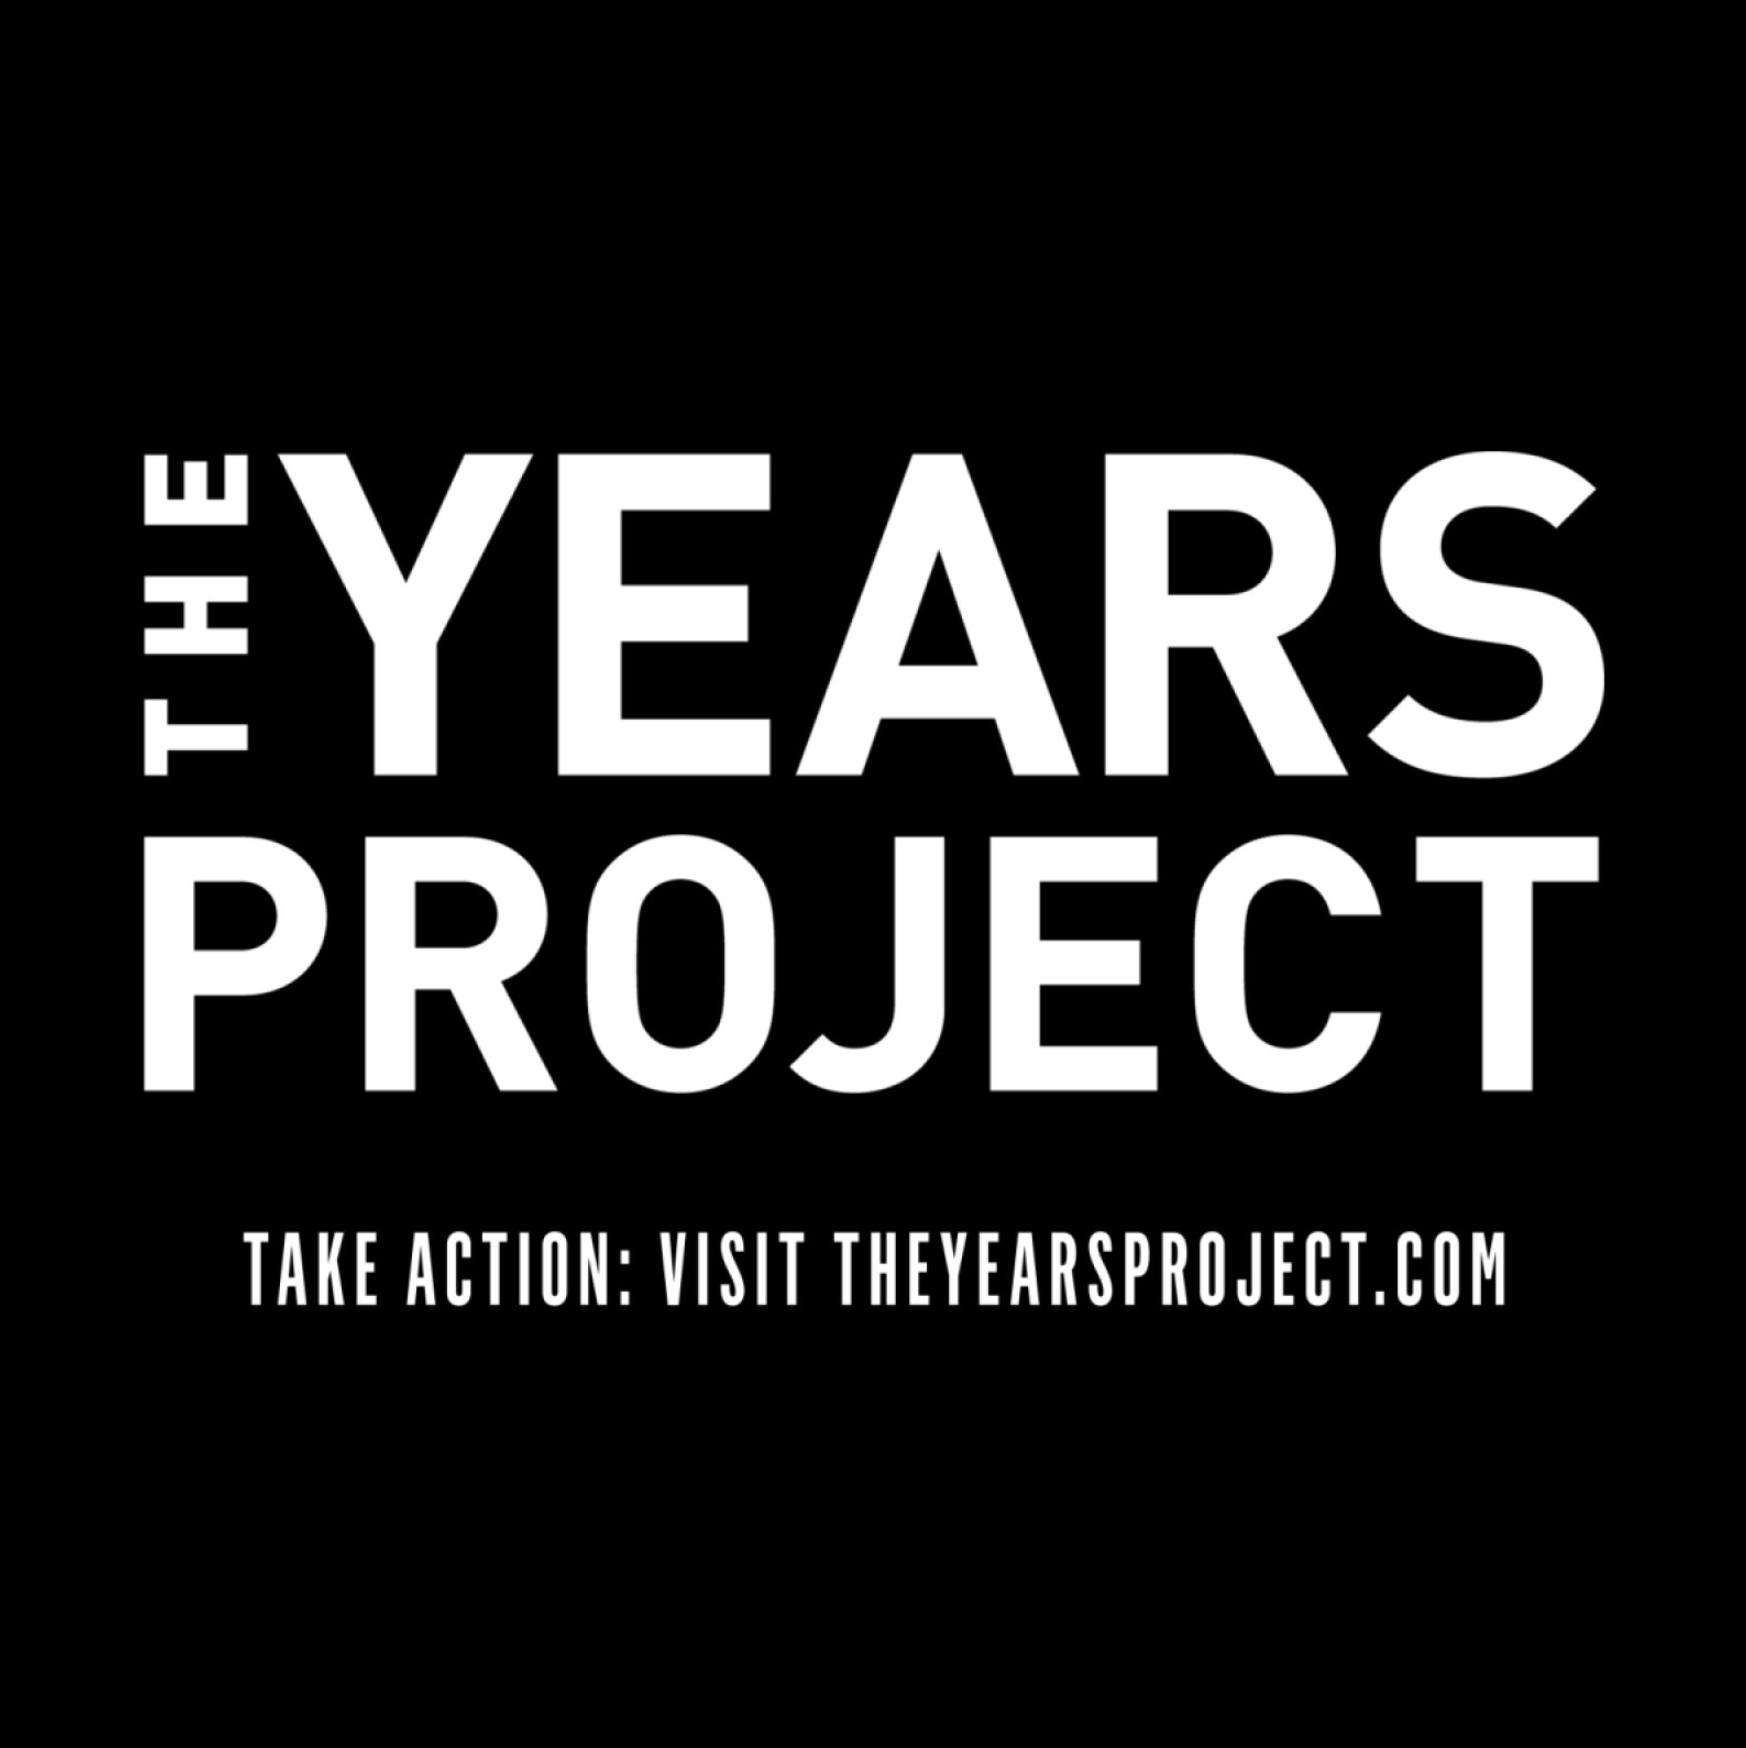 The Years Project - main logo design.